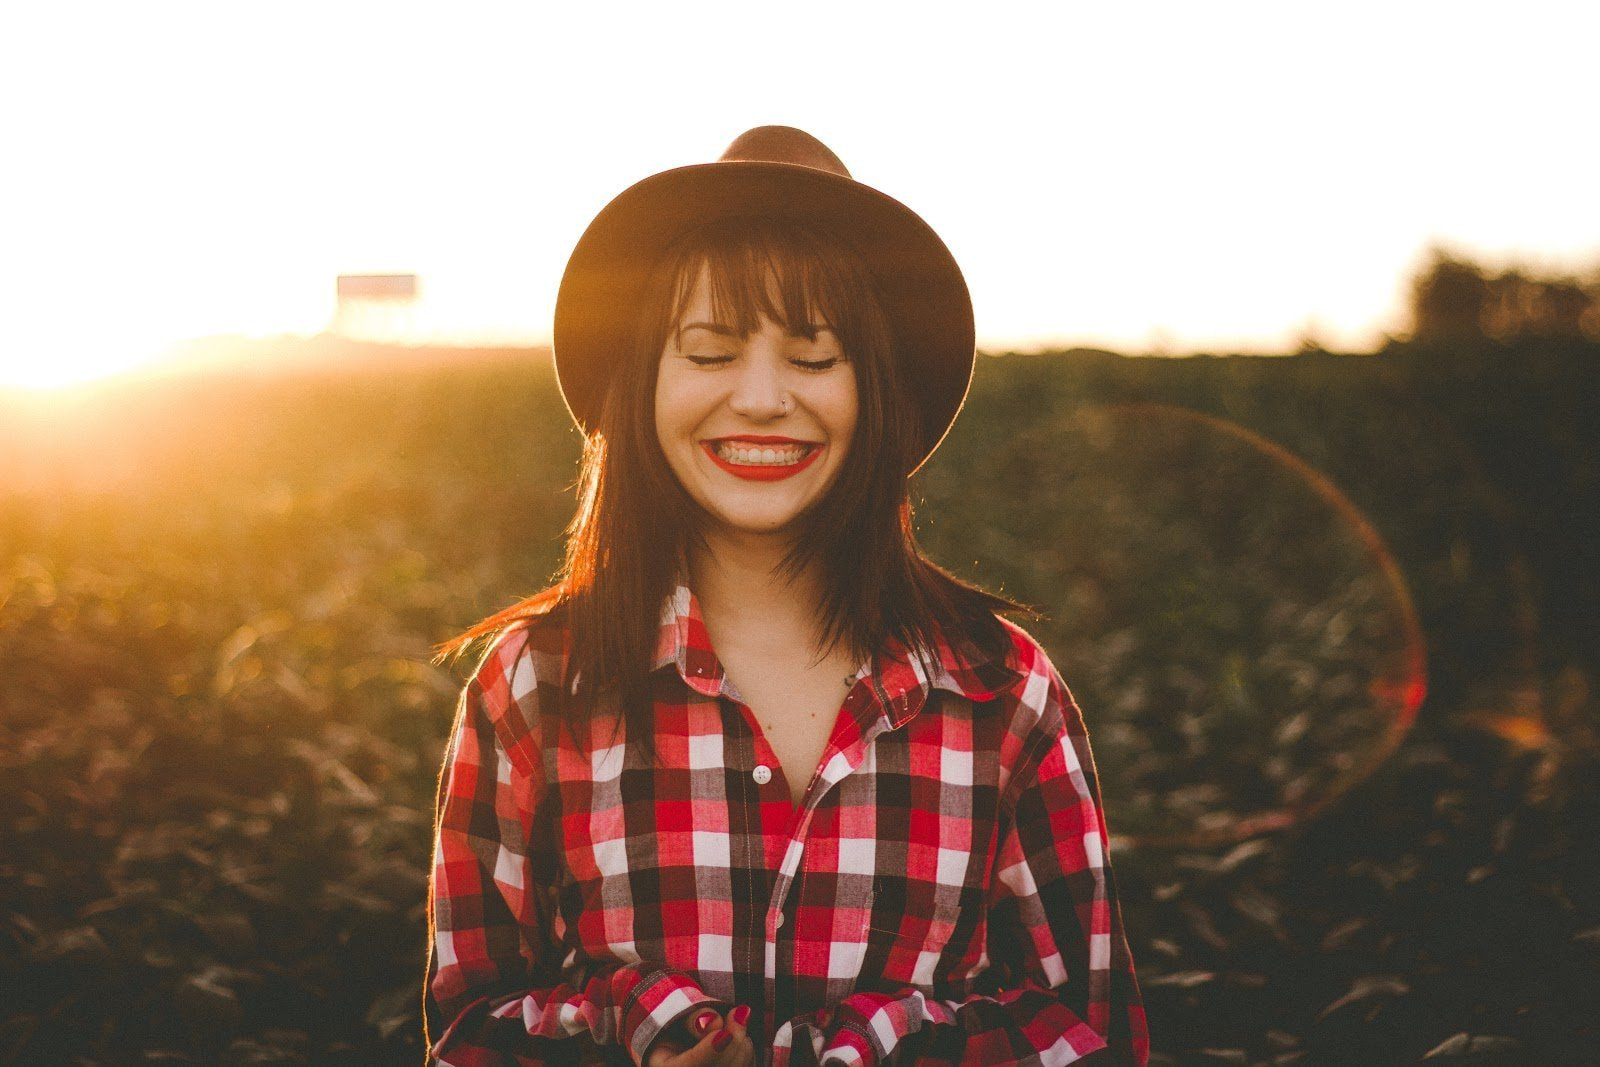 Portrait of a woman smiling with closed eyes during the golden hour by Allef Vinicius